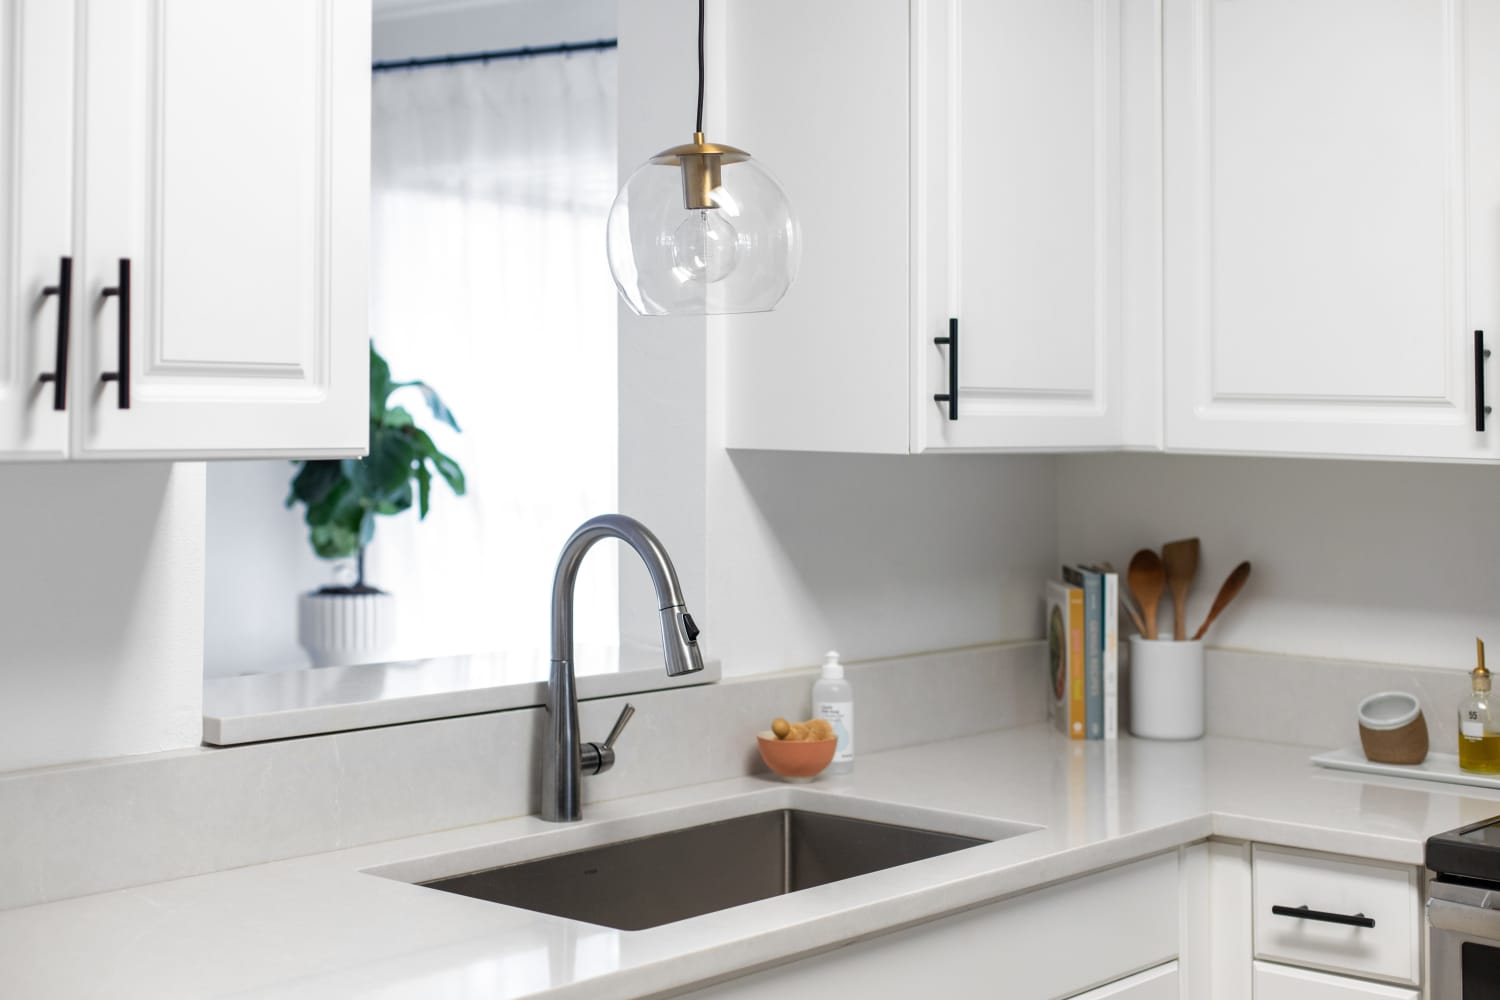 How To Clean Those Greasy Glass Shades on Your Kitchen's Pendant Lights